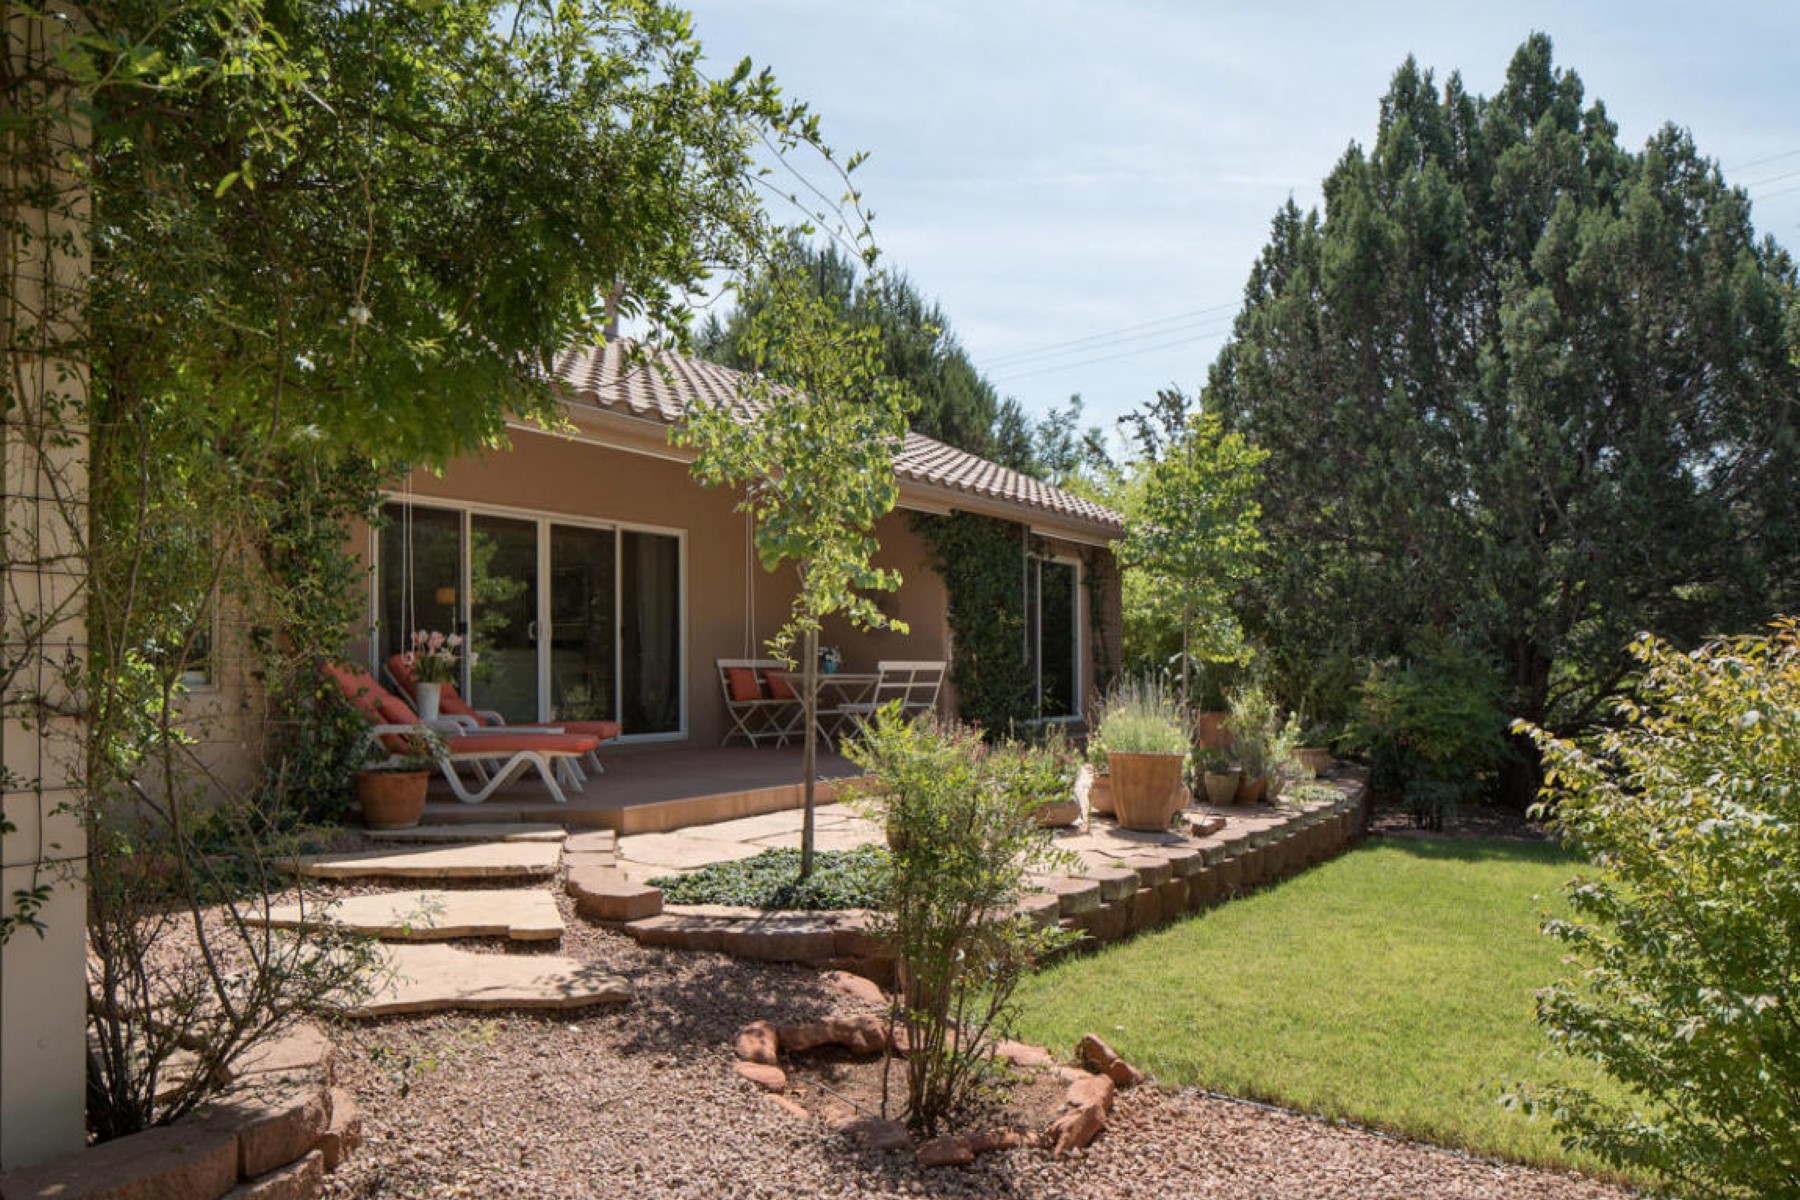 Single Family Home for Sale at .57 acre lot and surrounded by lush green enchanted gardens 35 Hohokam Drive Sedona, Arizona 86336 United States